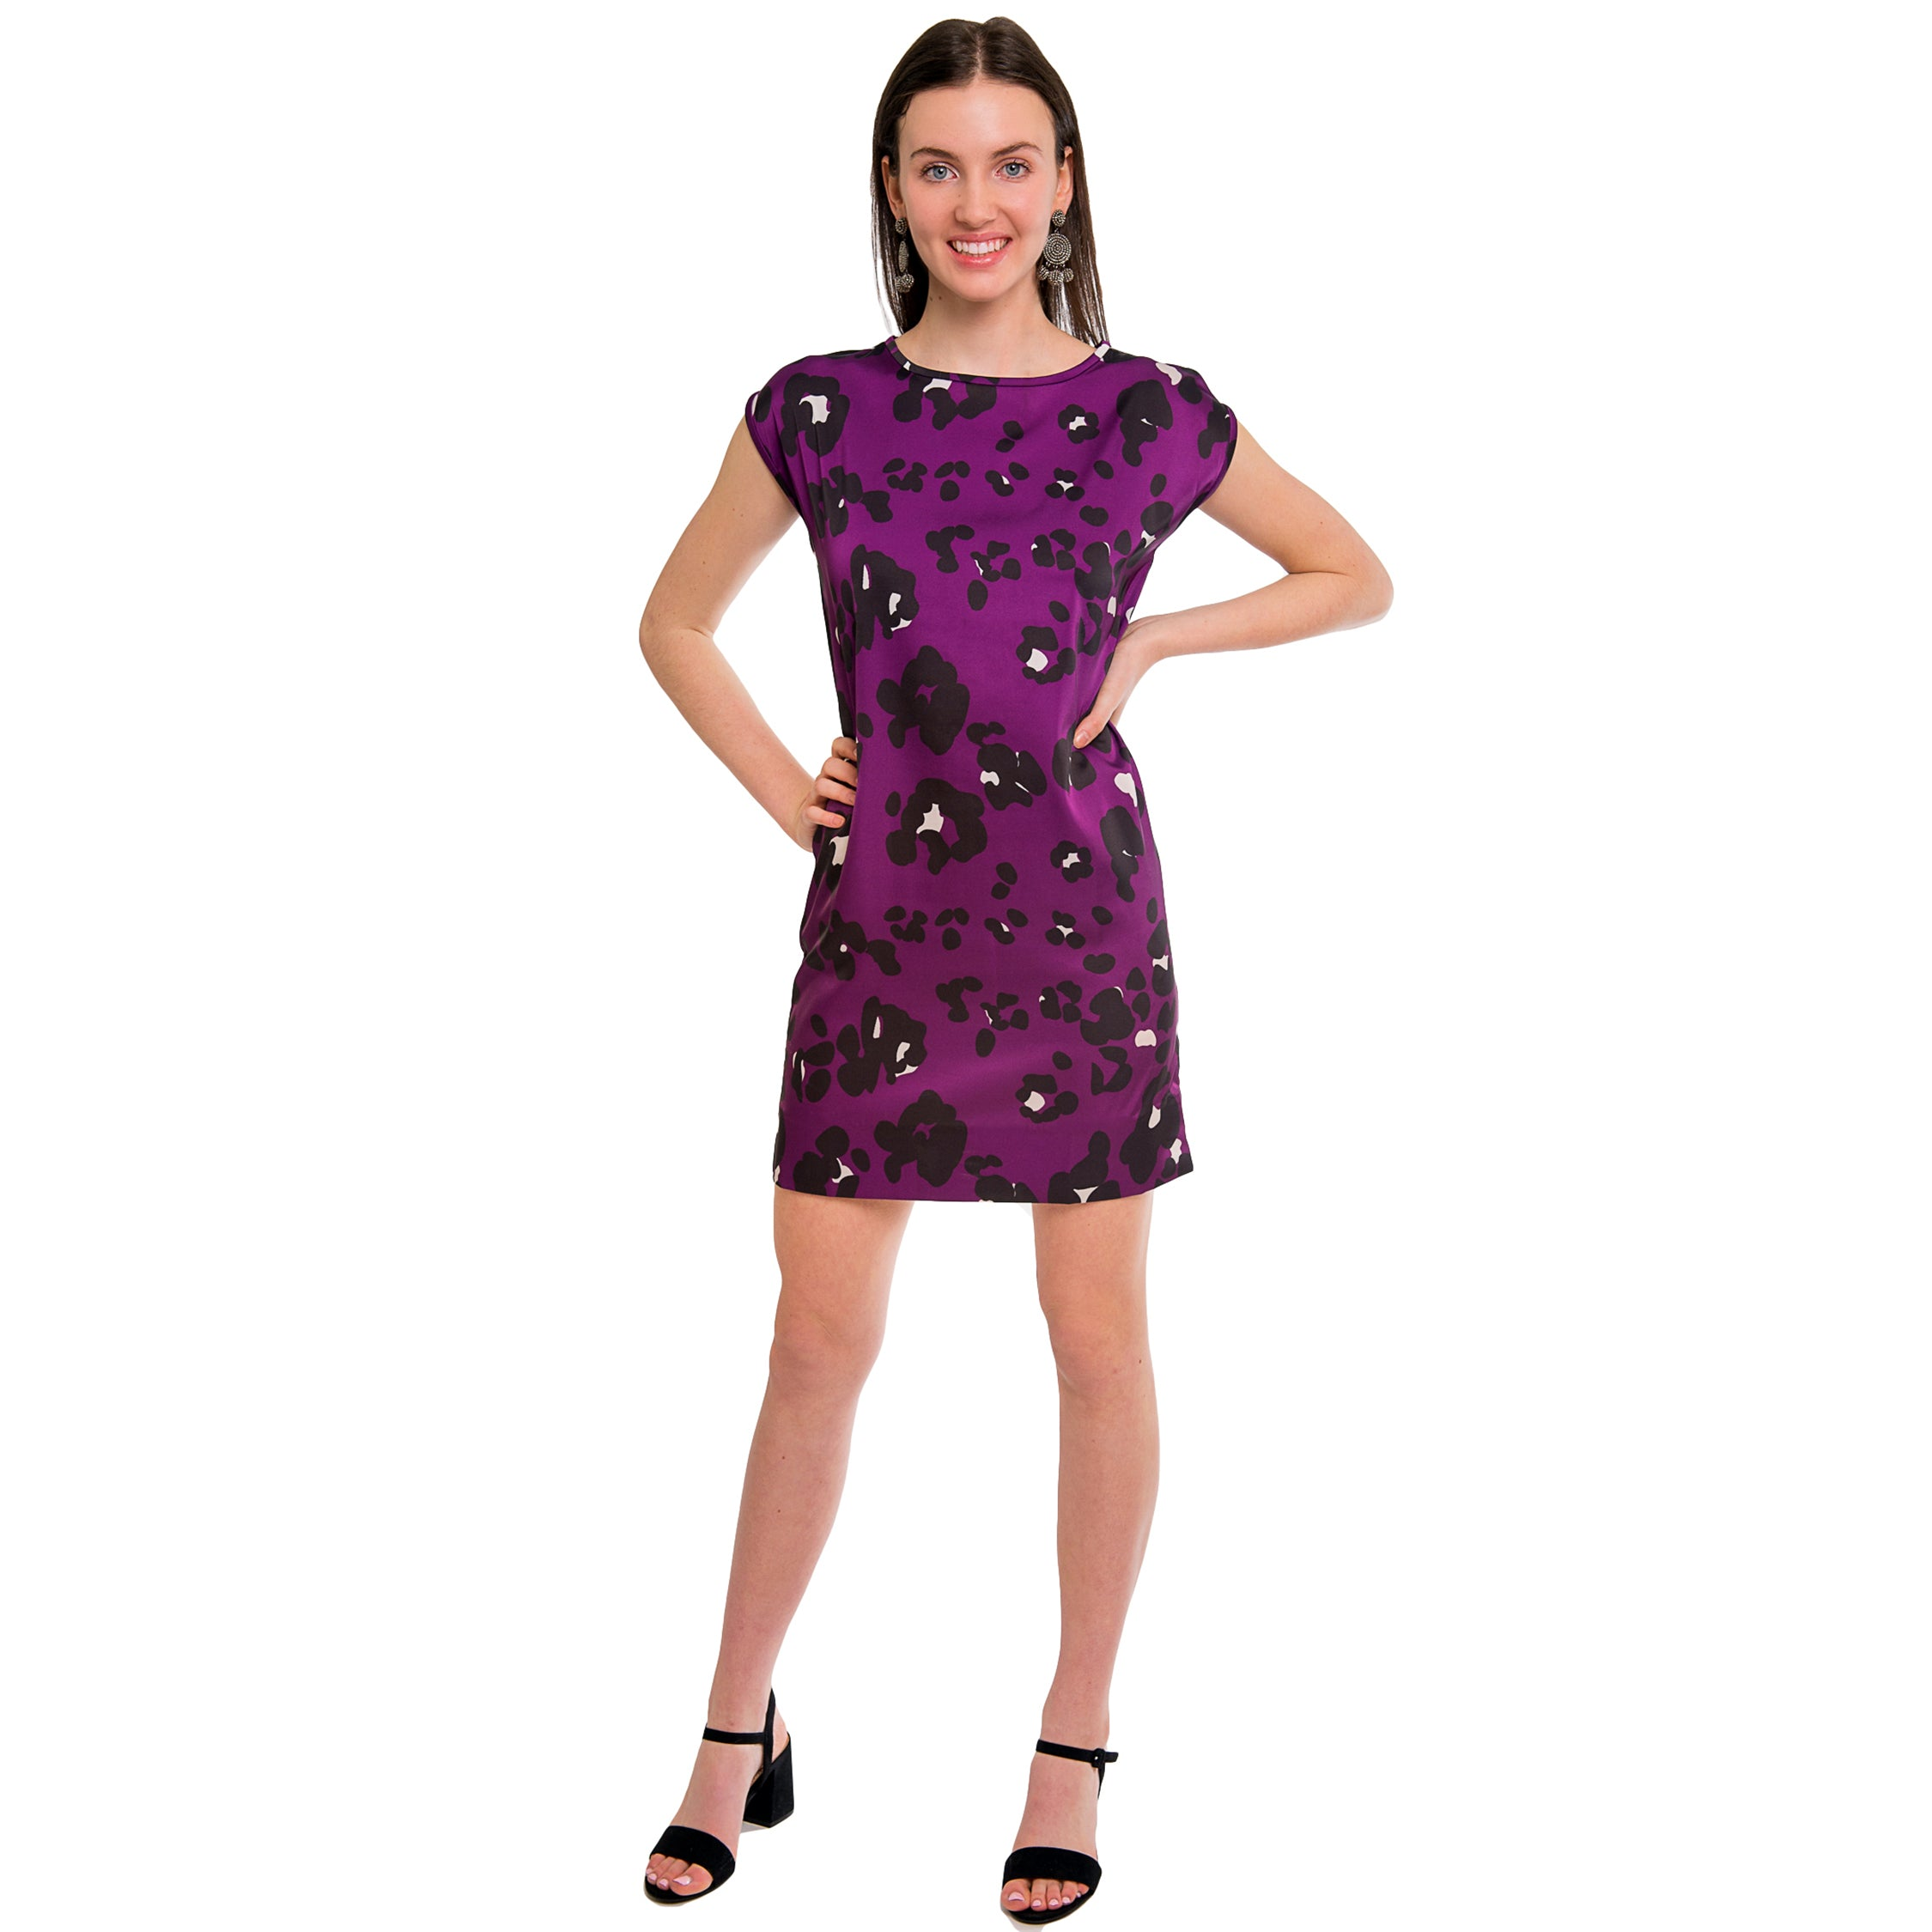 Avery Cap Sleeve Dress in Purple Spot - Elizabeth Ackerman New York